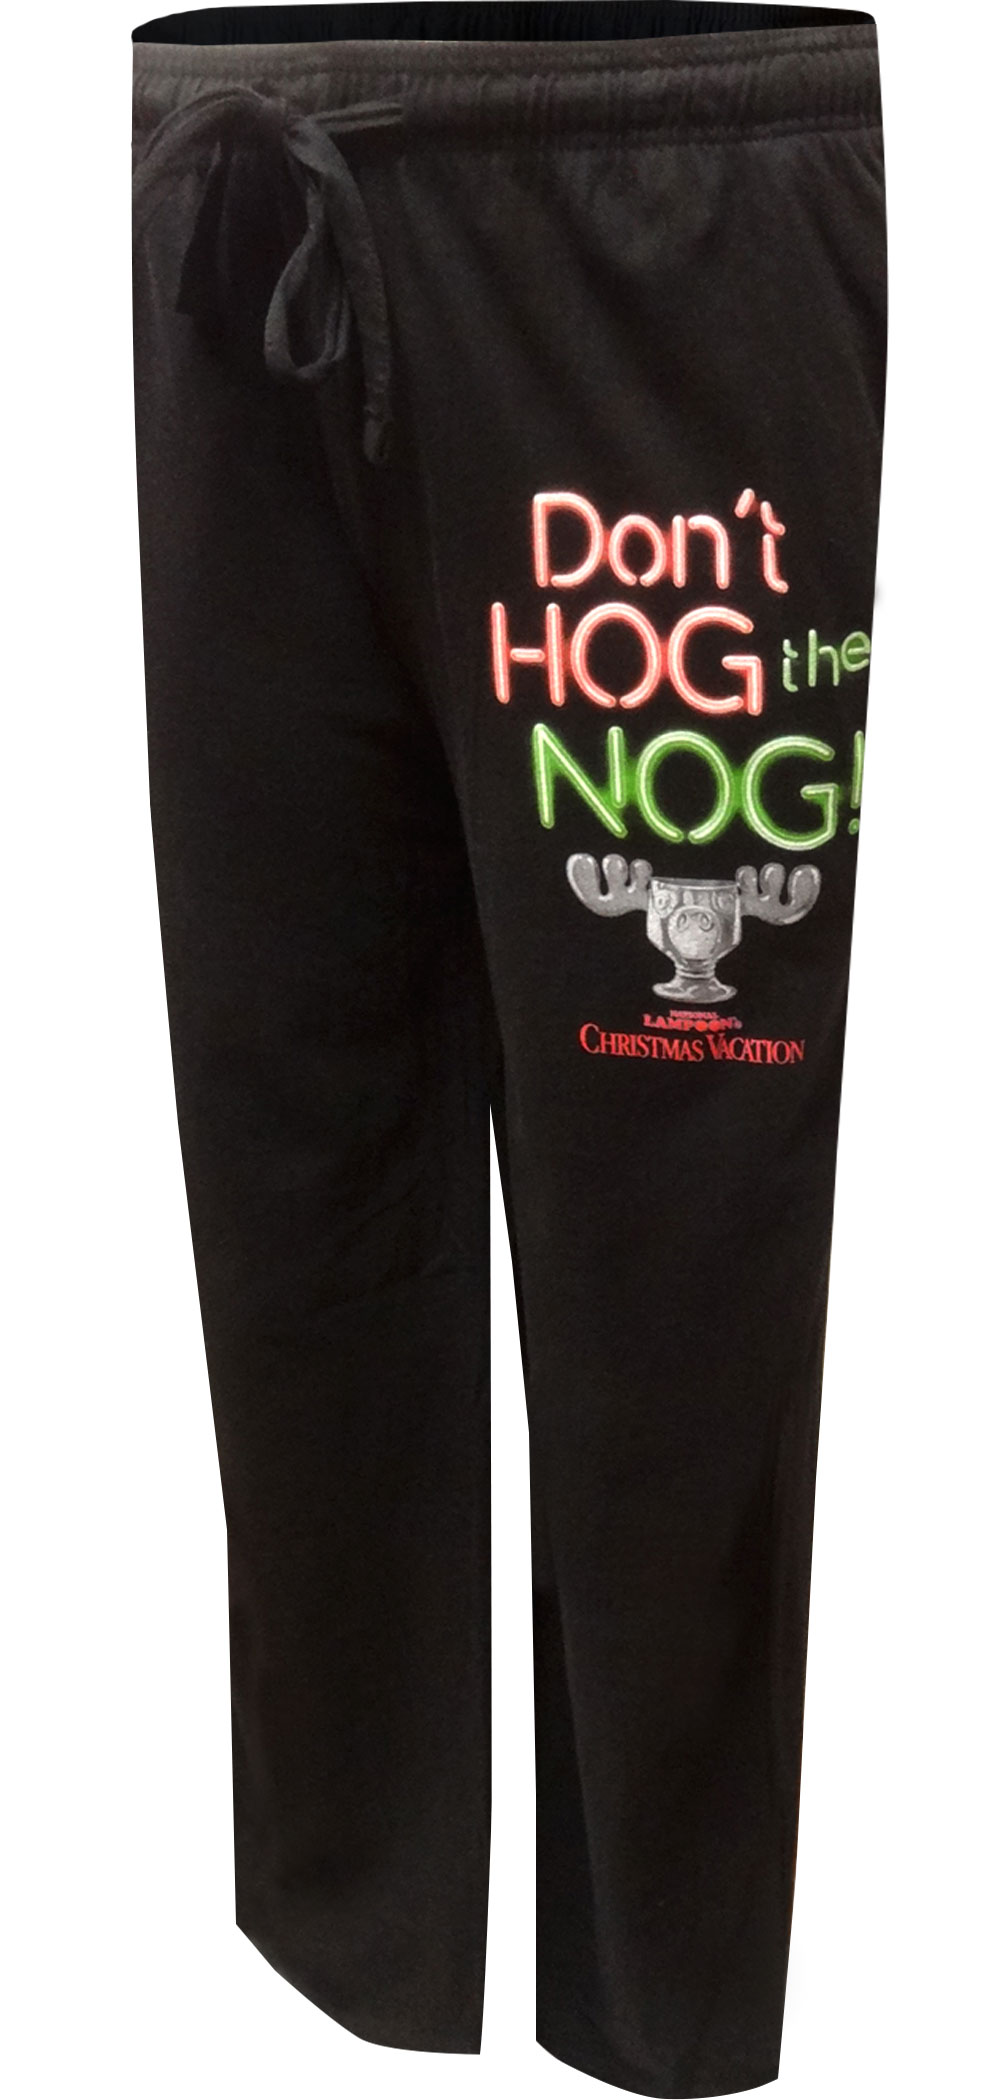 Image of Christmas Vacation Don't Hog The Nog Lounge Pants for men